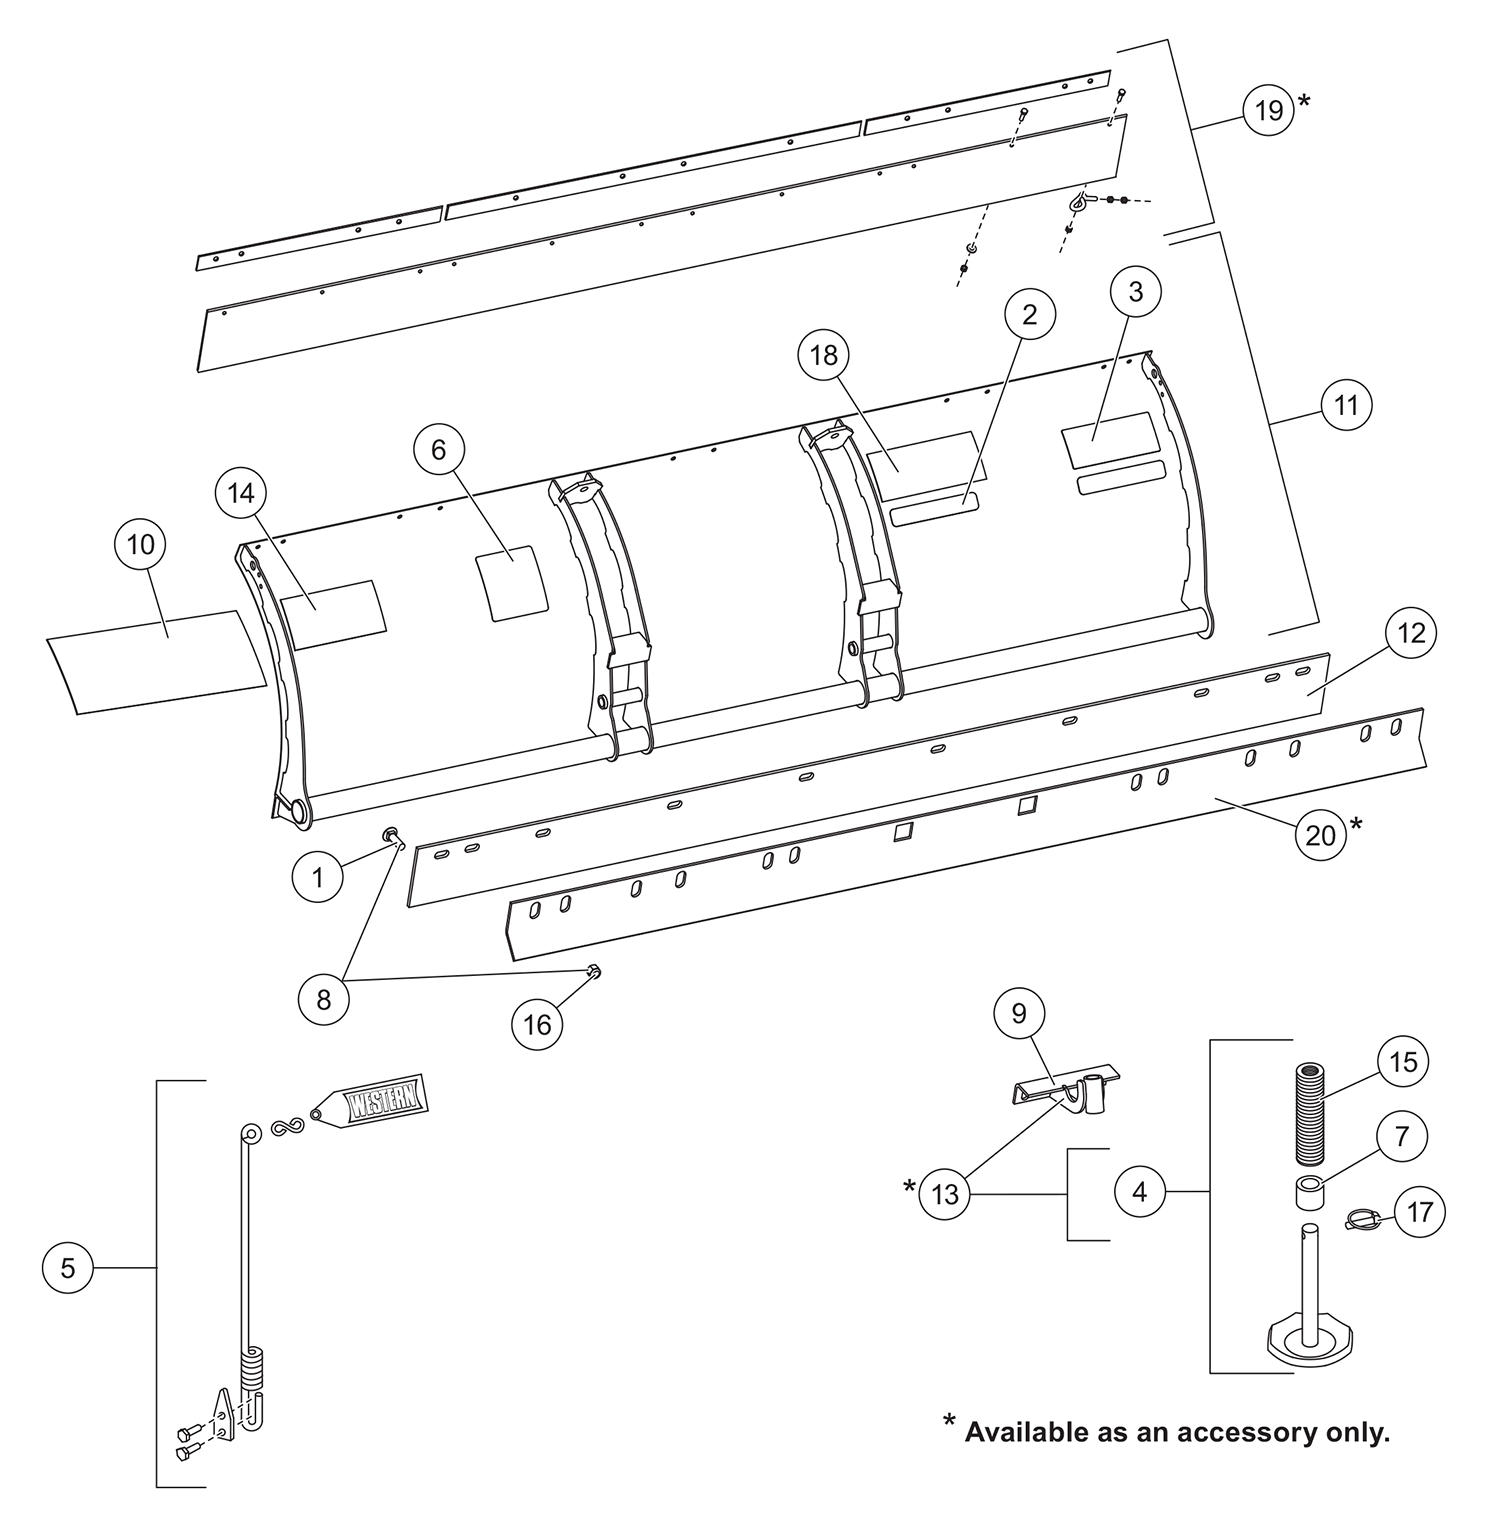 Meyer Snow Plow Replacement Parts in addition Western Unimount Mvp Fisher Ez V Hydraulic Unit additionally Prodigy furthermore Hts additionally Western Fisher Electric Pump Harness Or Belt Drive Conventional Mount 56307 7648. on western parts suburbanite